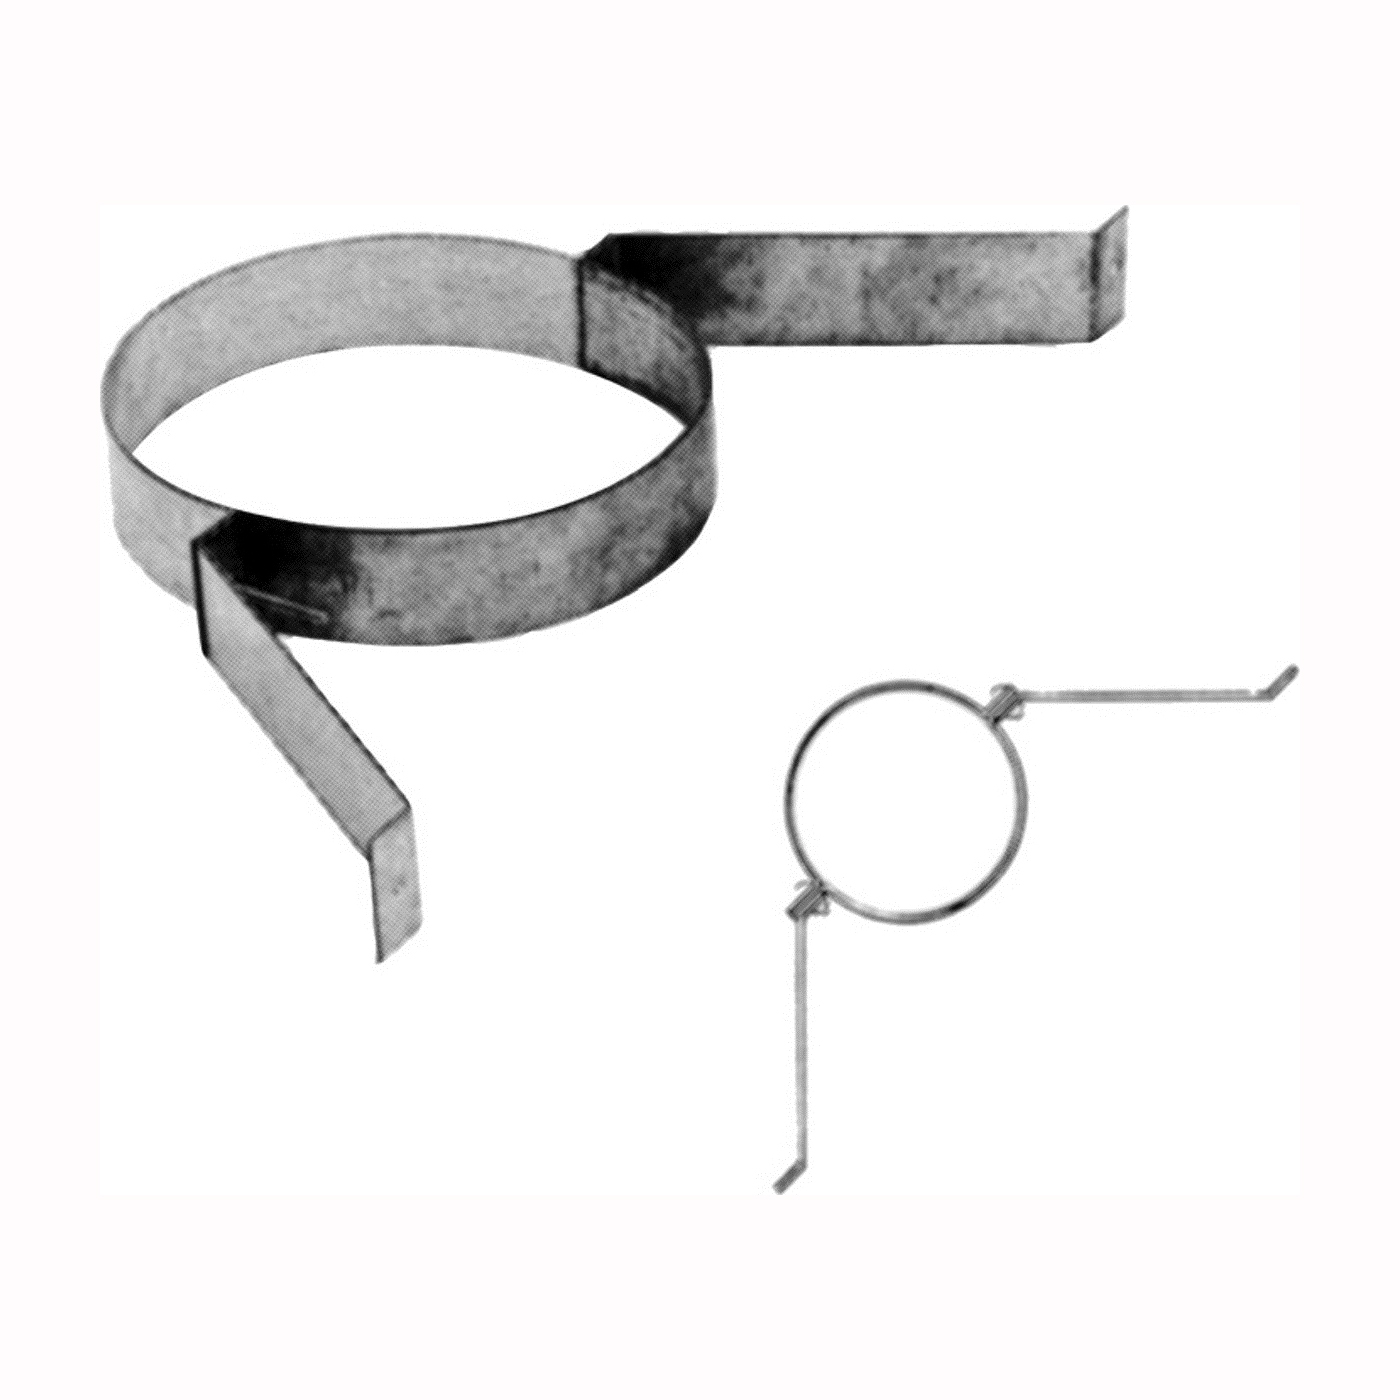 Picture of AmeriVent 6HS-SBA Wall Band Assembly, Galvanized Steel, Galvanized